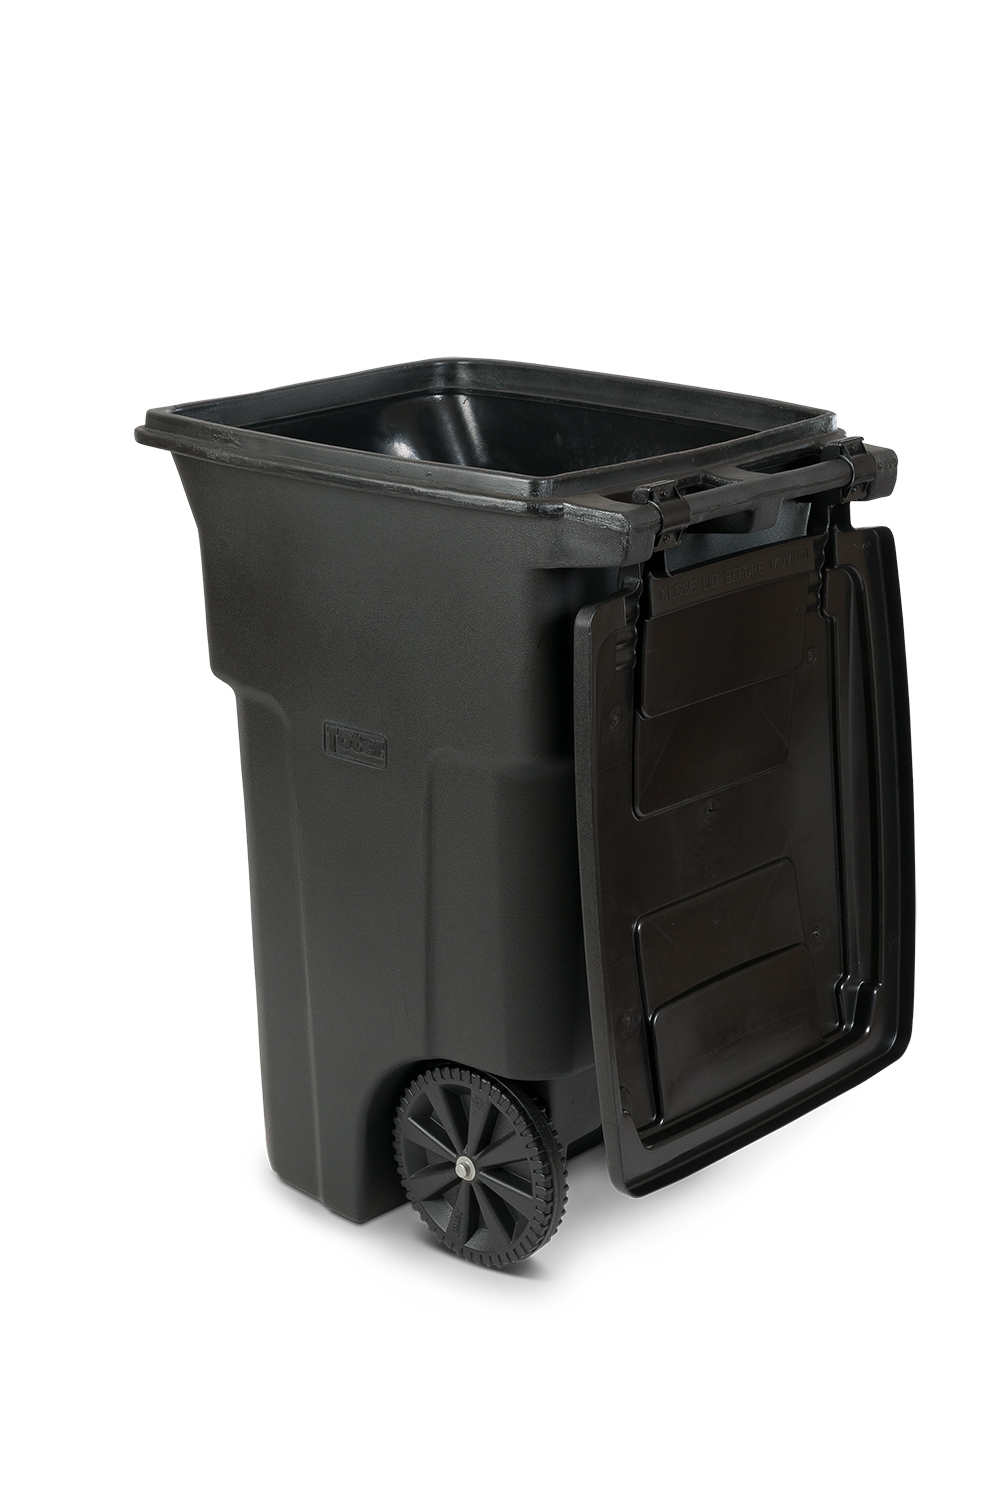 f5f64cdd1aedc1 Toter 64 Gal. Trash Can Greenstone with Wheels and Lid - Walmart.com